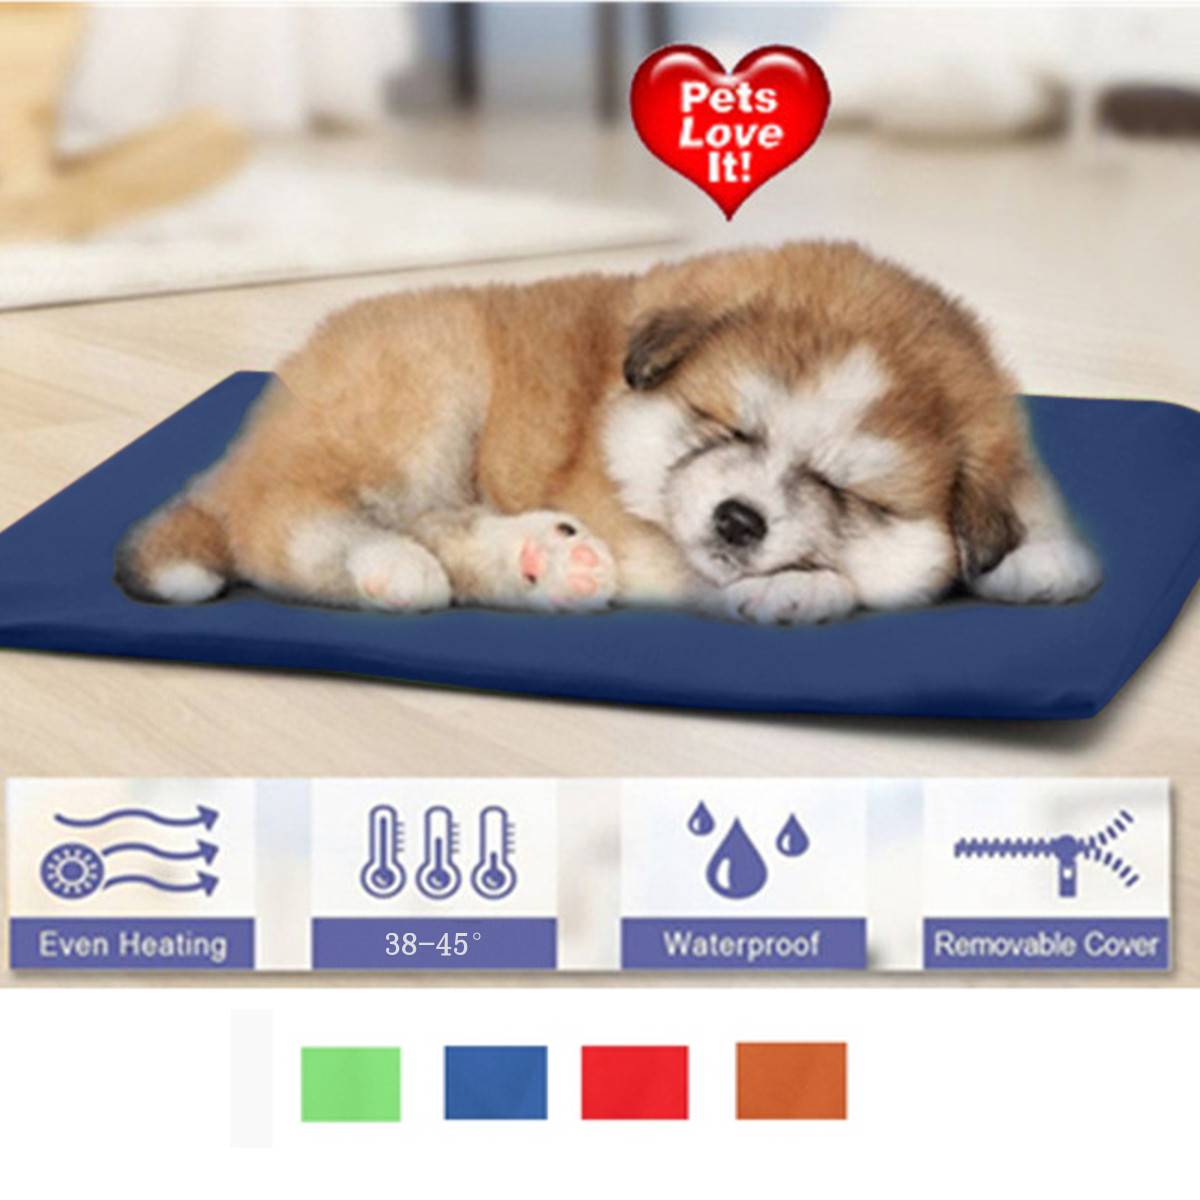 Chew resistant Waterproof Soft Pet Cat Dog Cat Electric Heating Pad Bed Cusion Mat Pad Kennel Crate Cozy Heated Indoor Heater WarmerMat 38-45℃